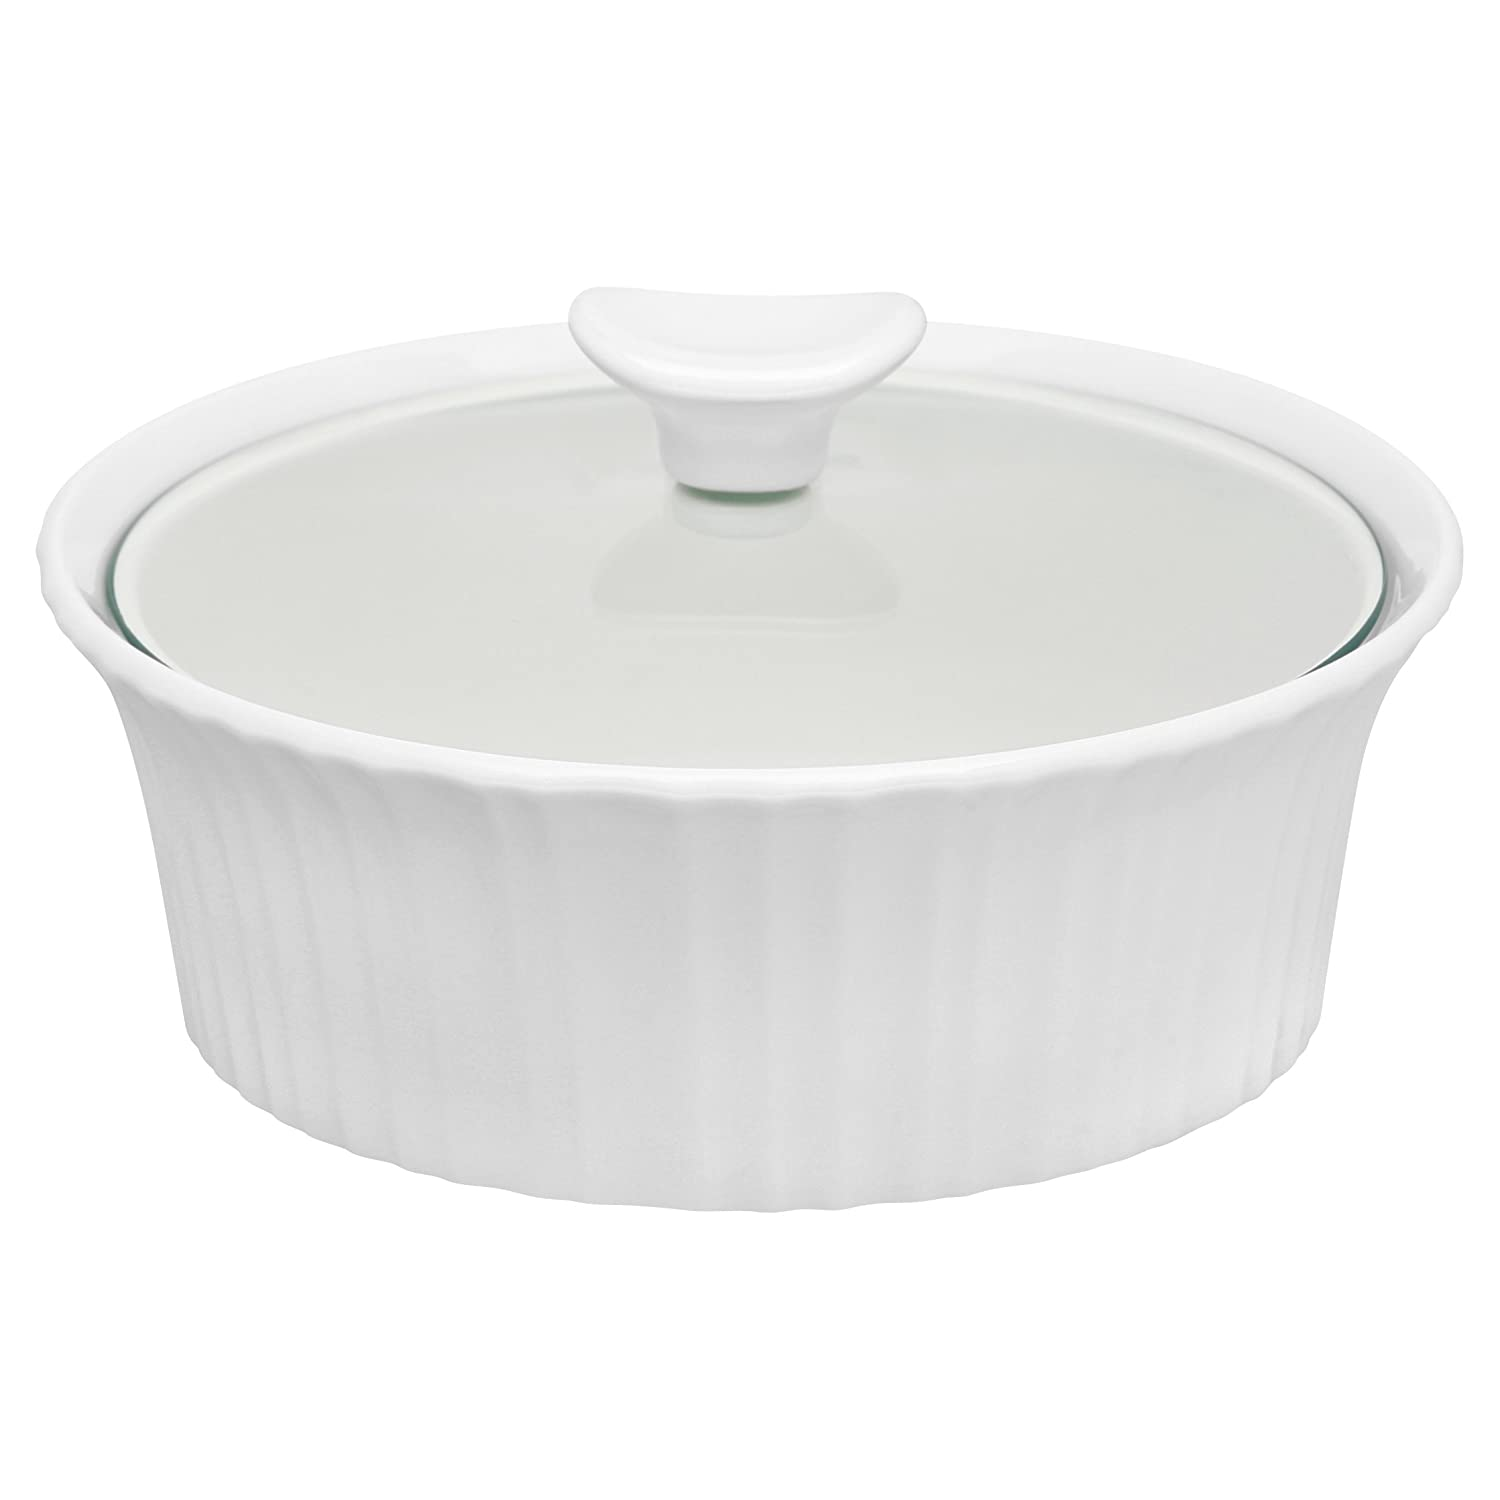 CorningWare French White 1.5-Quart Round Casserole with Glass Lid